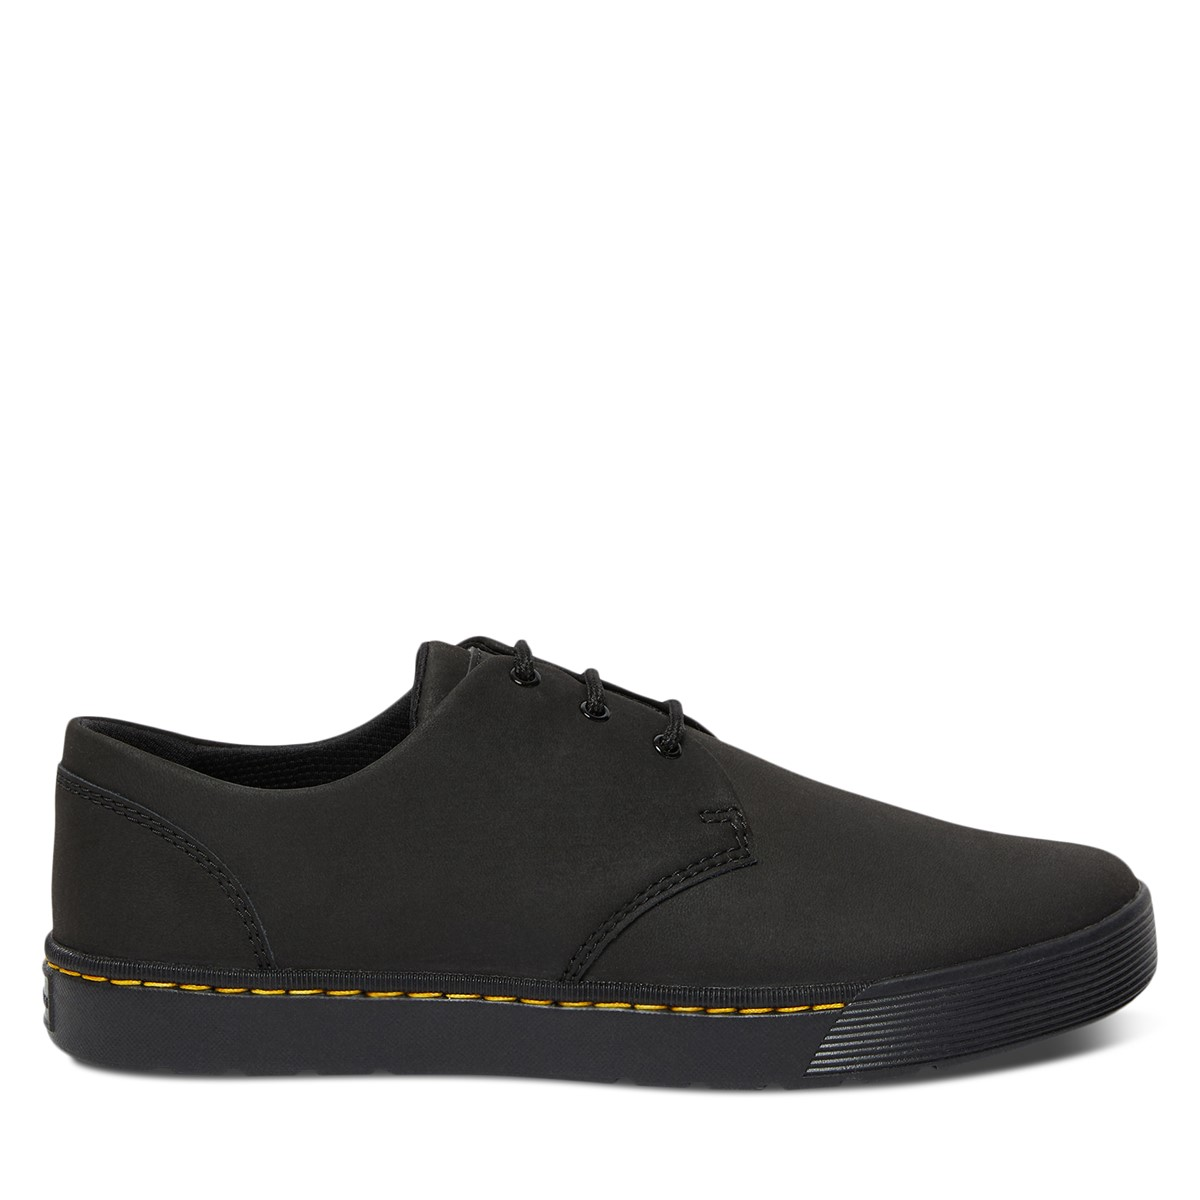 Men's Cairo Shoes in Black